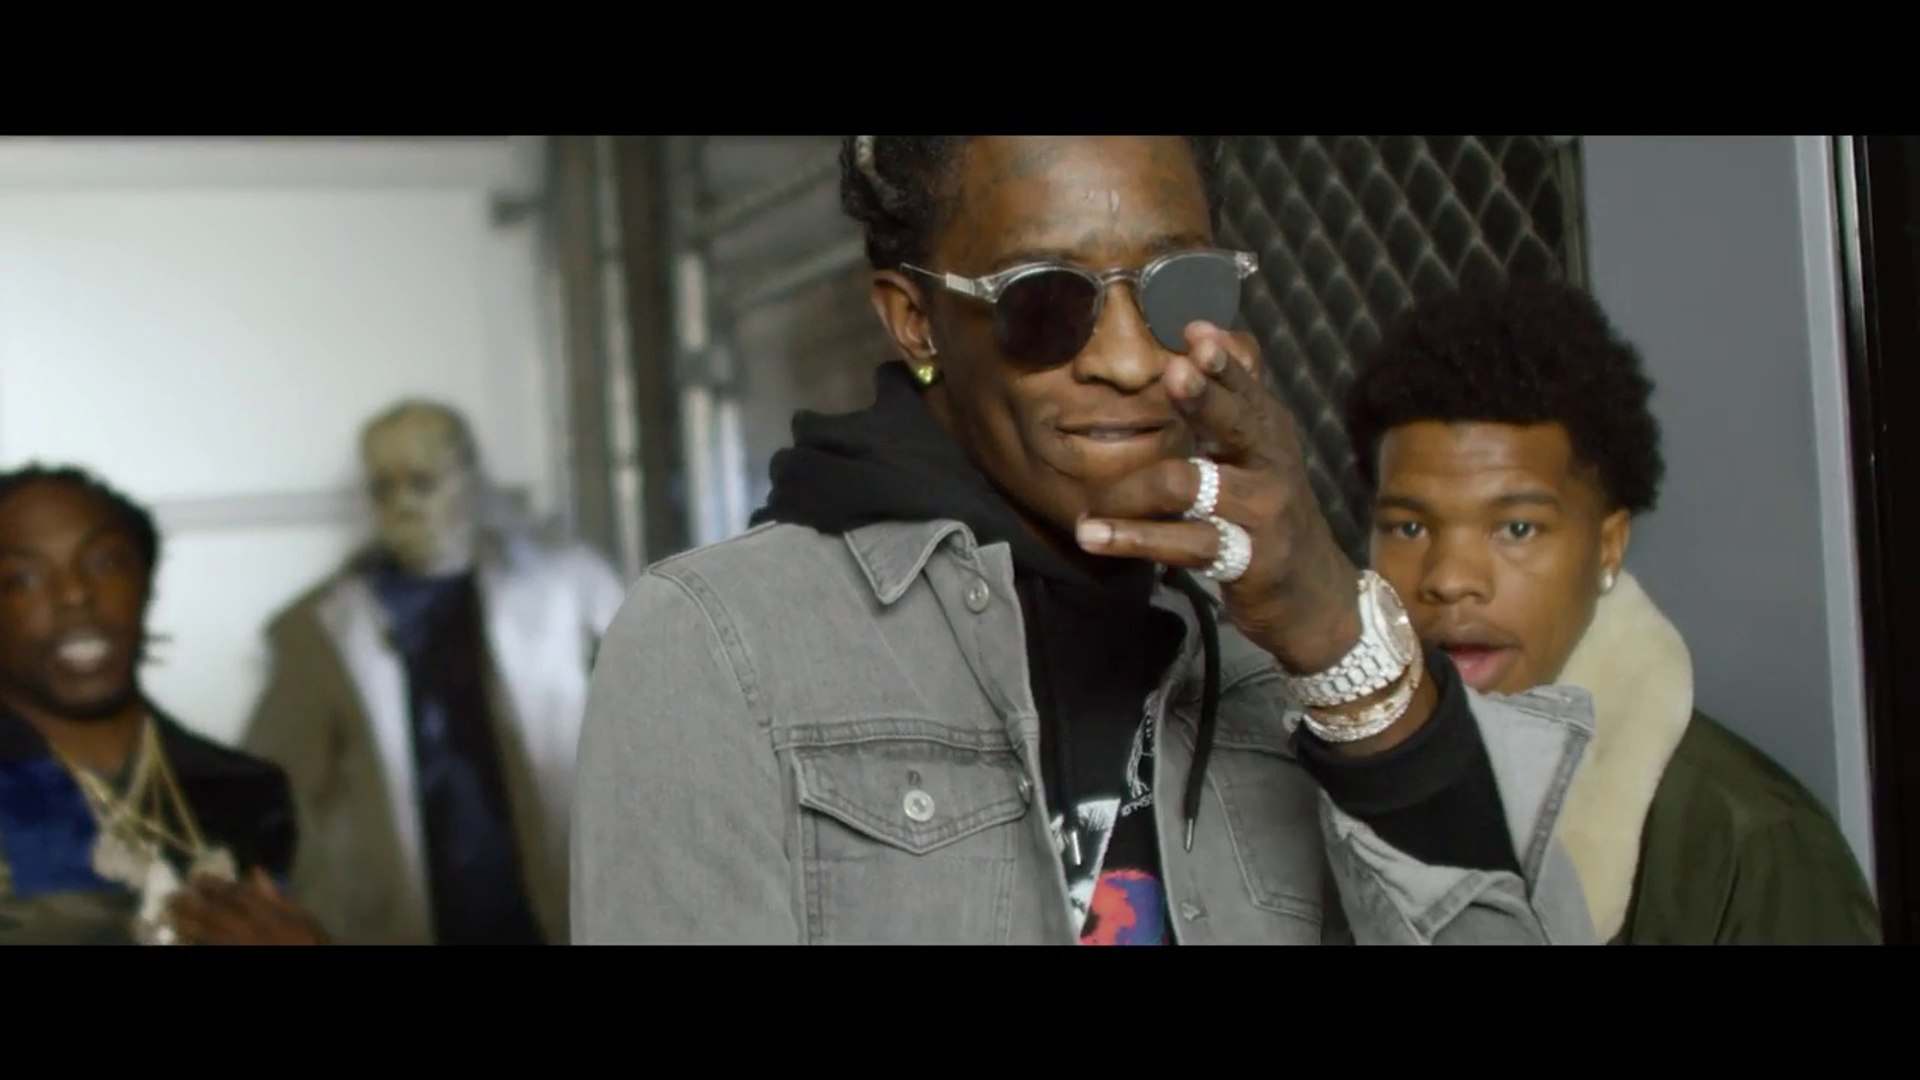 YOUNG THUG ft QUAVO & OFFSET & YOUNG SCOOTER